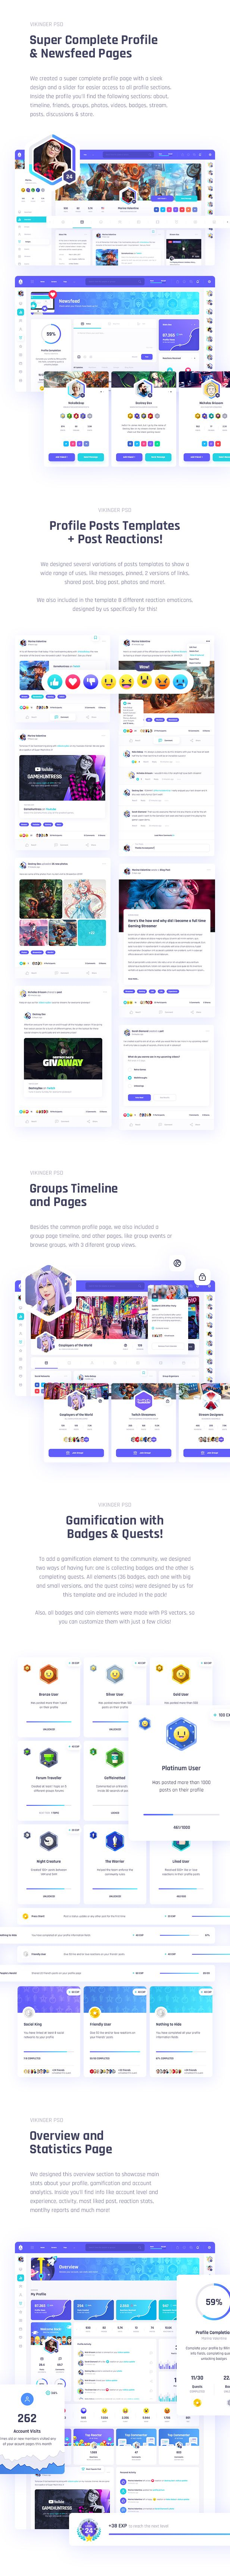 Vikinger - Social Network and Marketplace PSD Template - 11